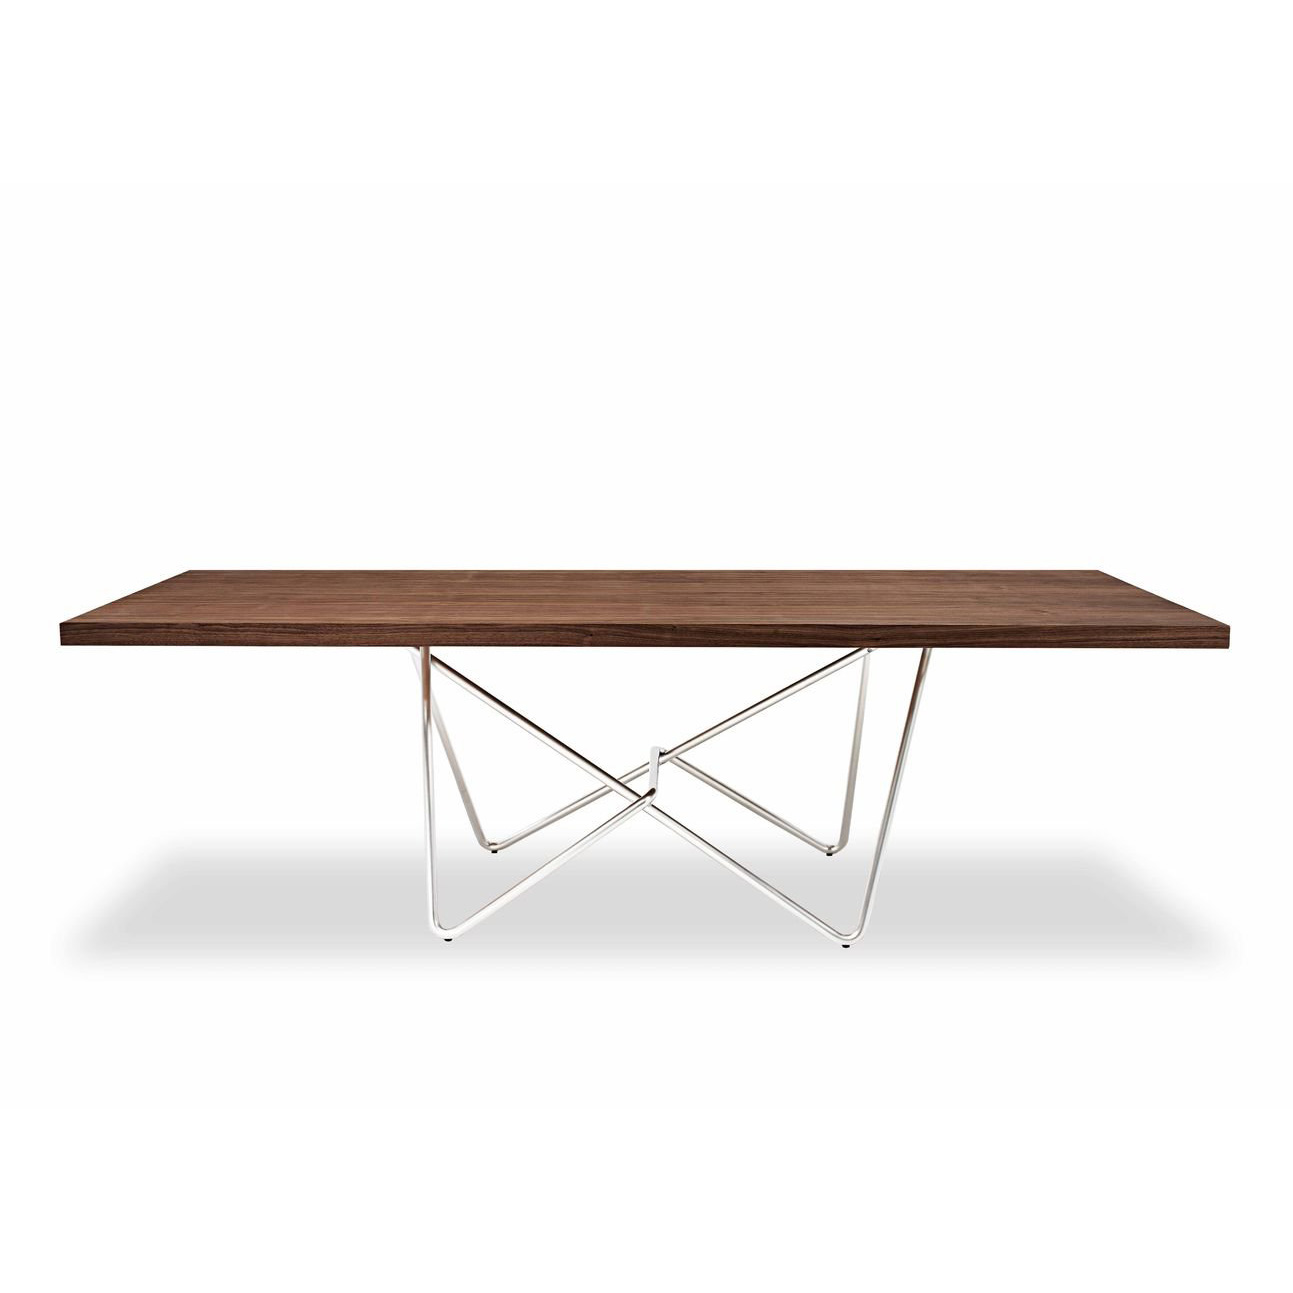 Piano Design 2006 dining table from Riva 1920, designed by Renzo and Matteo Piano